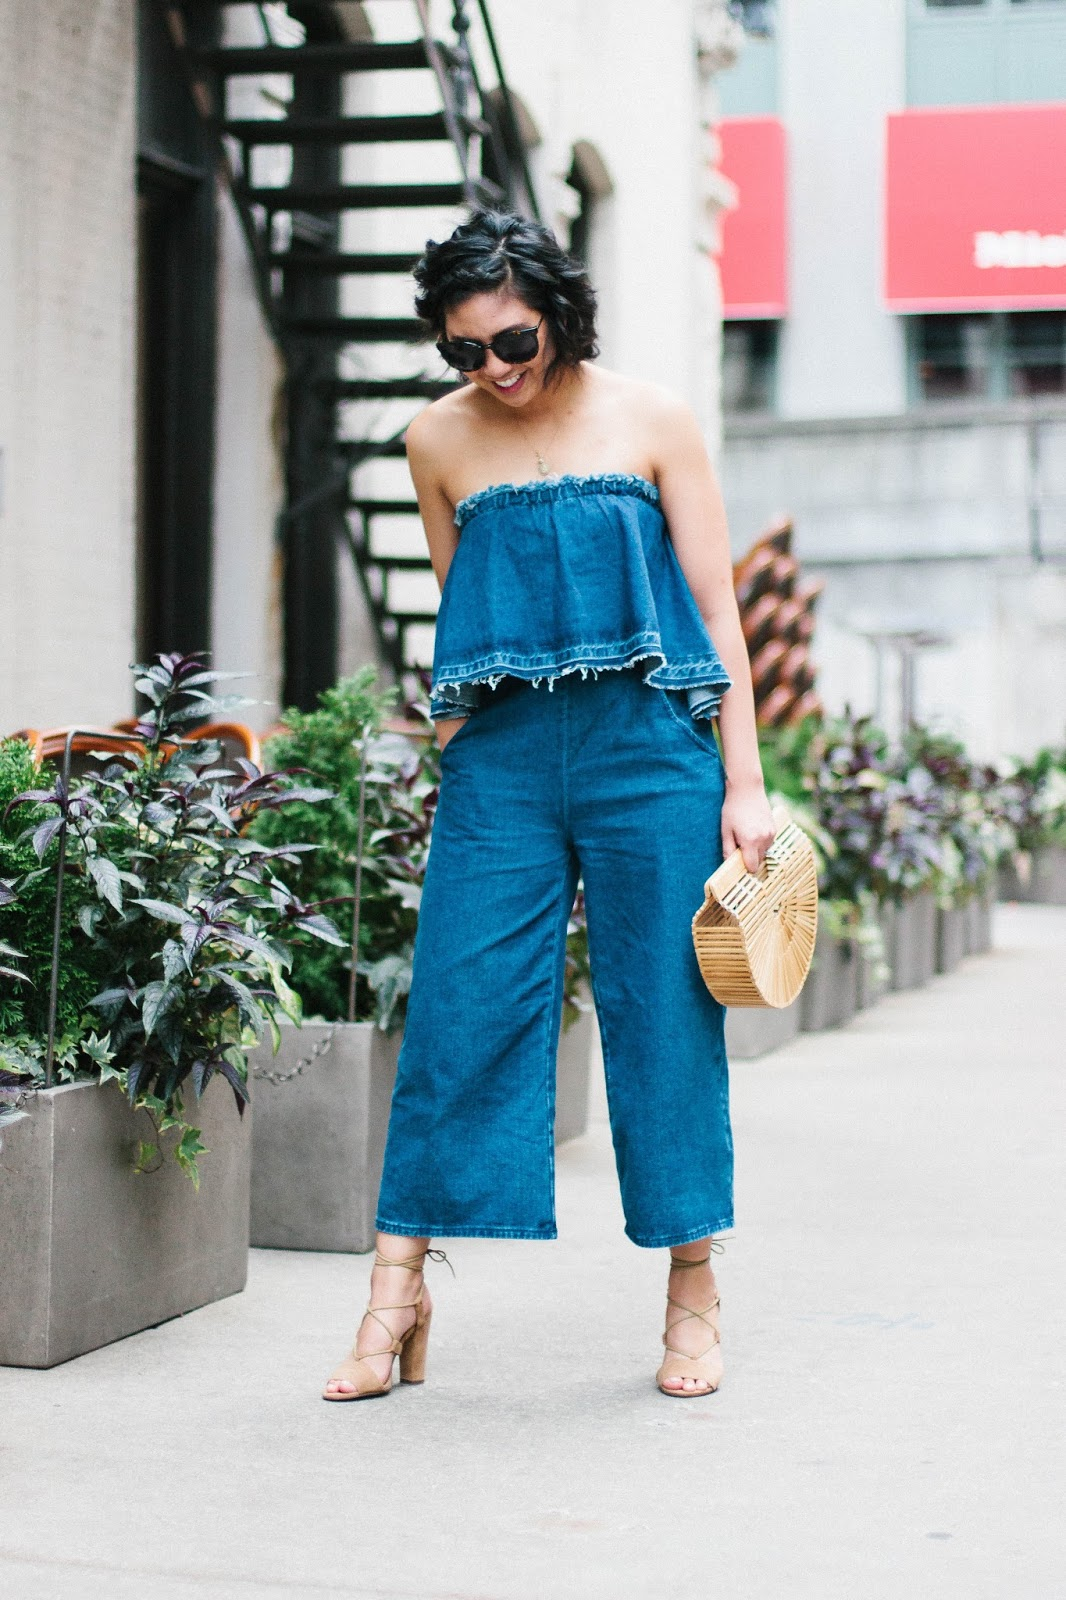 How To Wear A Dressy Casual Outfit